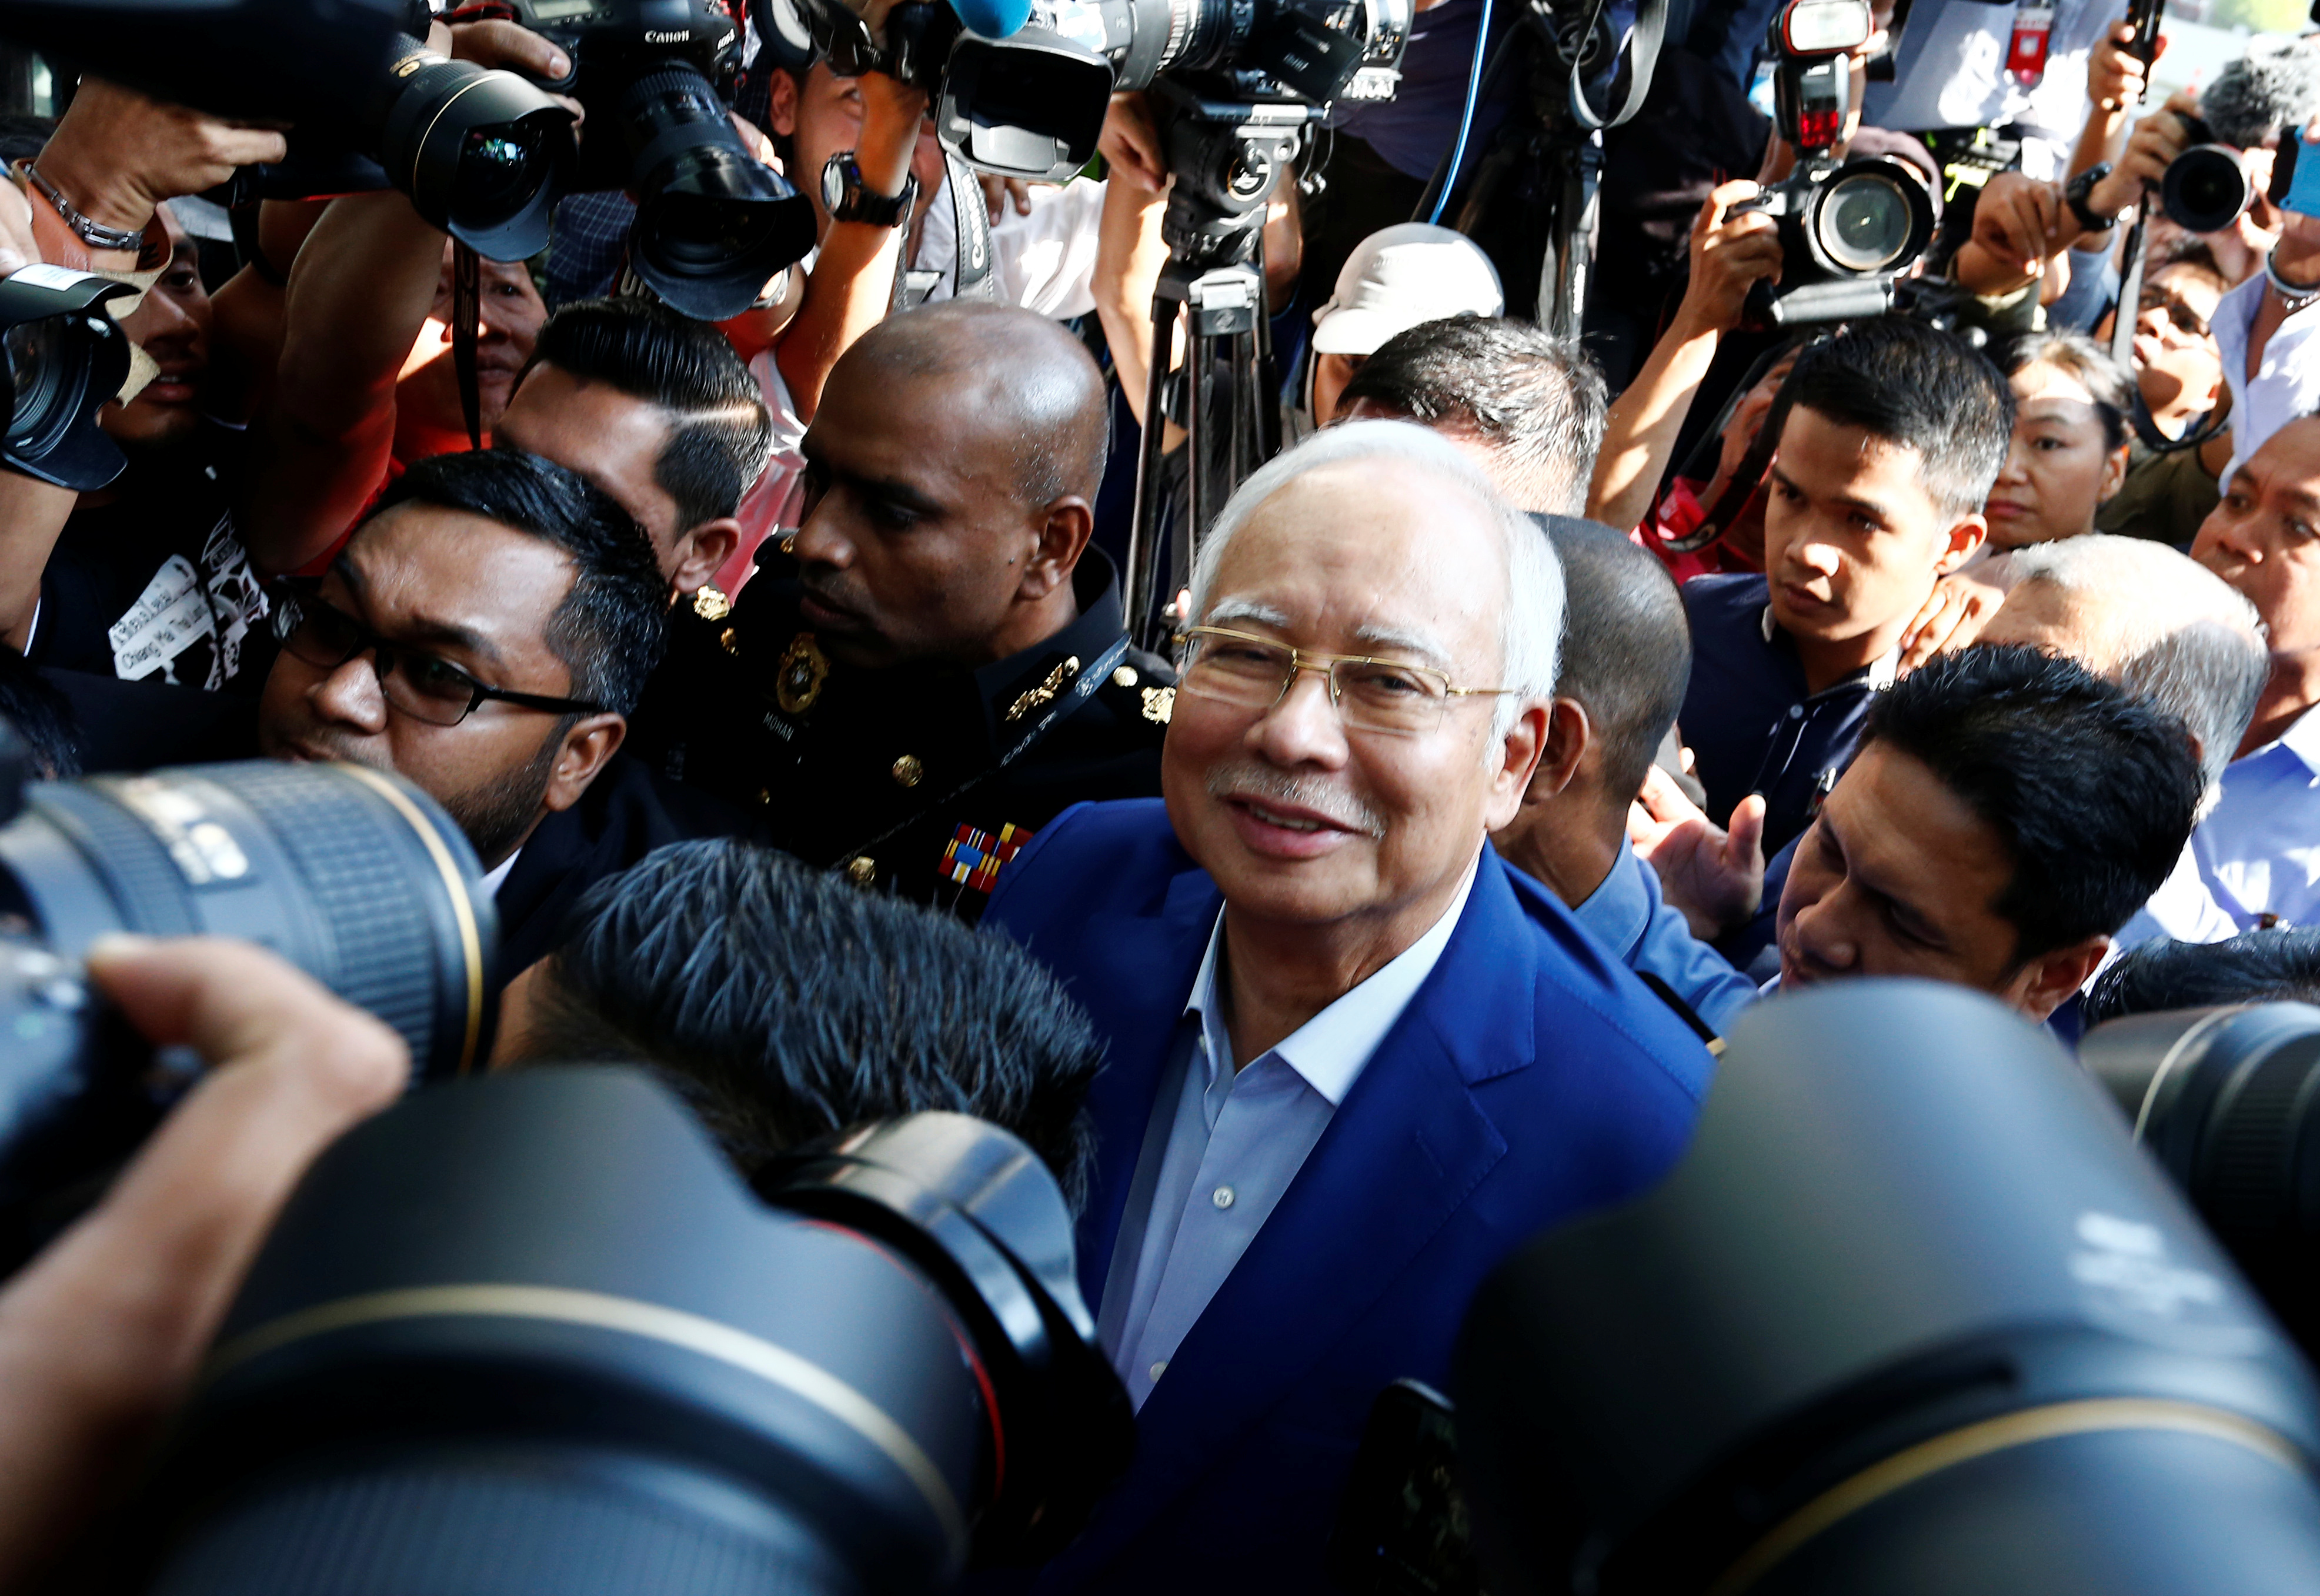 Malaysia's former prime minister Najib Razak arrives to give a statement to the Malaysian Anti-Corruption Commission (MACC) in Putrajaya, Malaysia May 22, 2018.